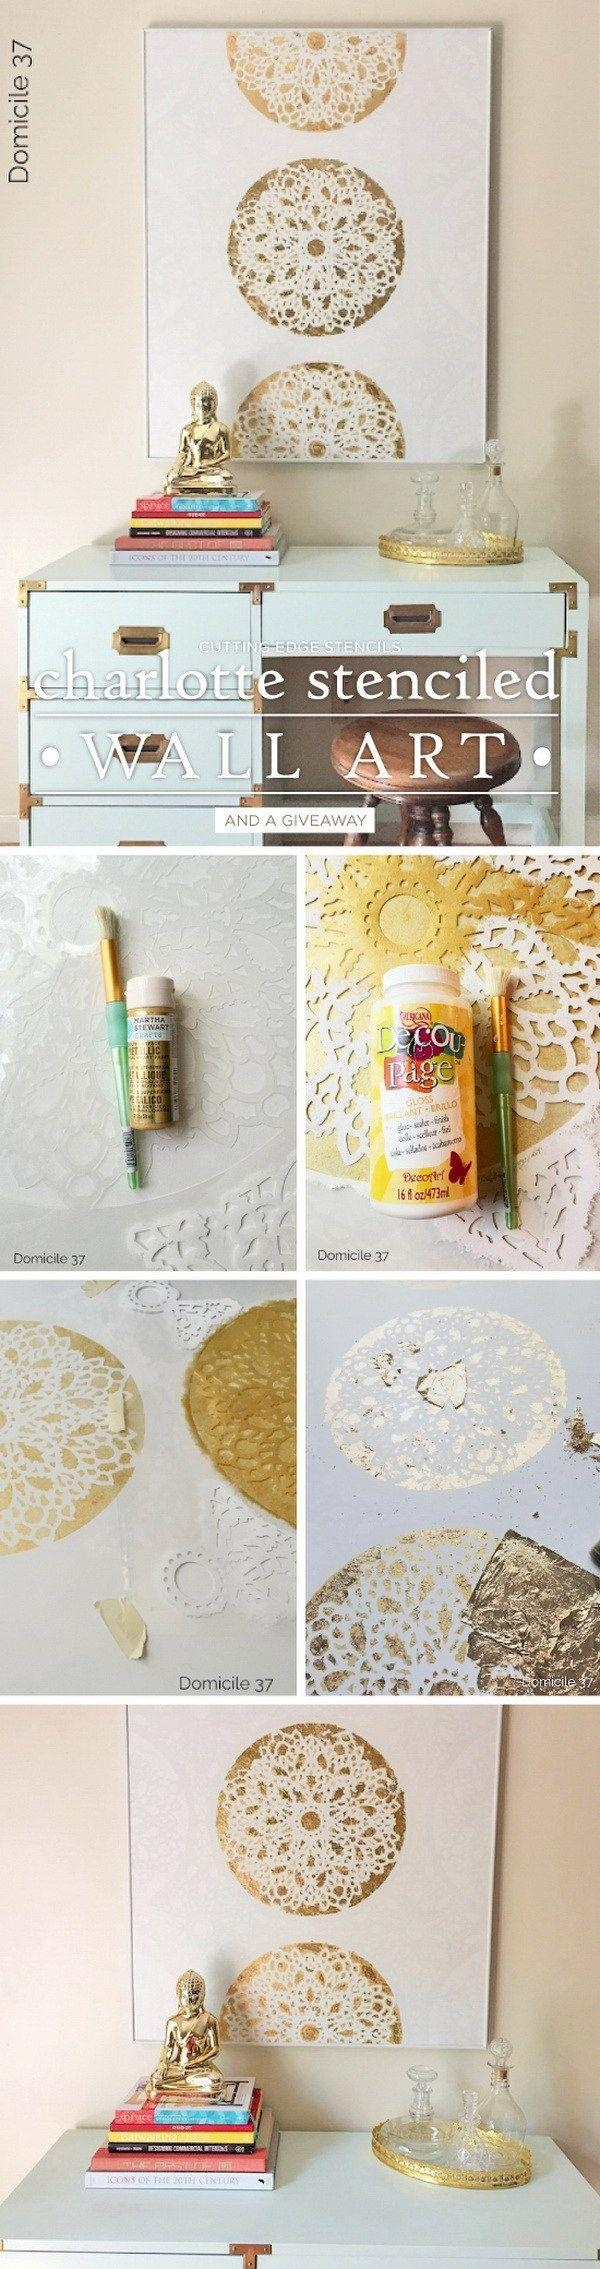 Best 25+ Fabric Wall Art Ideas On Pinterest | Large Wall Art With Regard To Framed Fabric Wall Art (View 19 of 20)